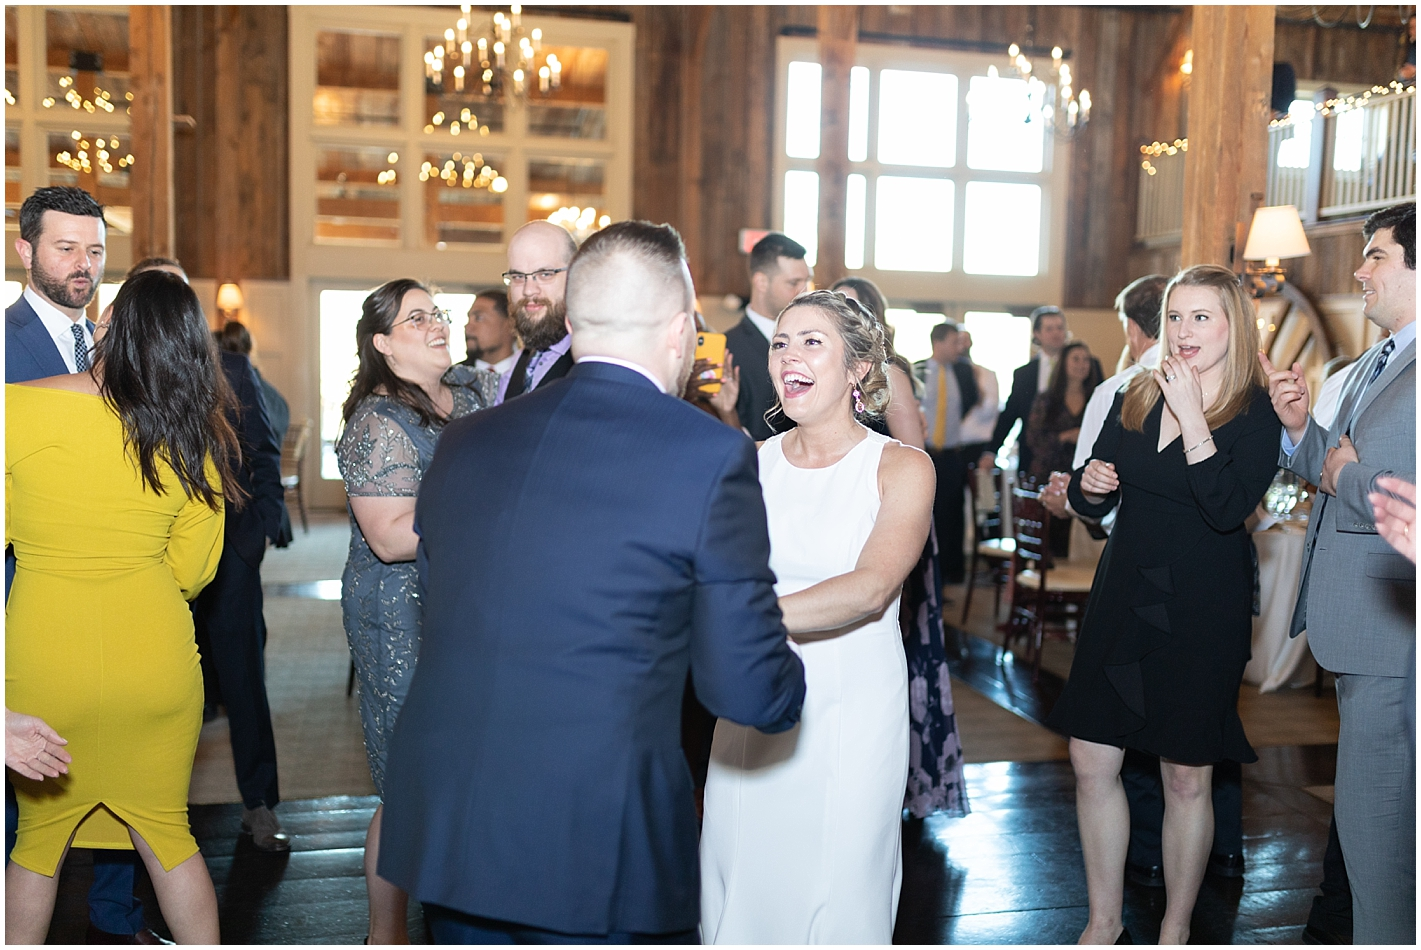 Wedding Reception at Gibbet Hill Grill Photos by Alyssa Parker Photography